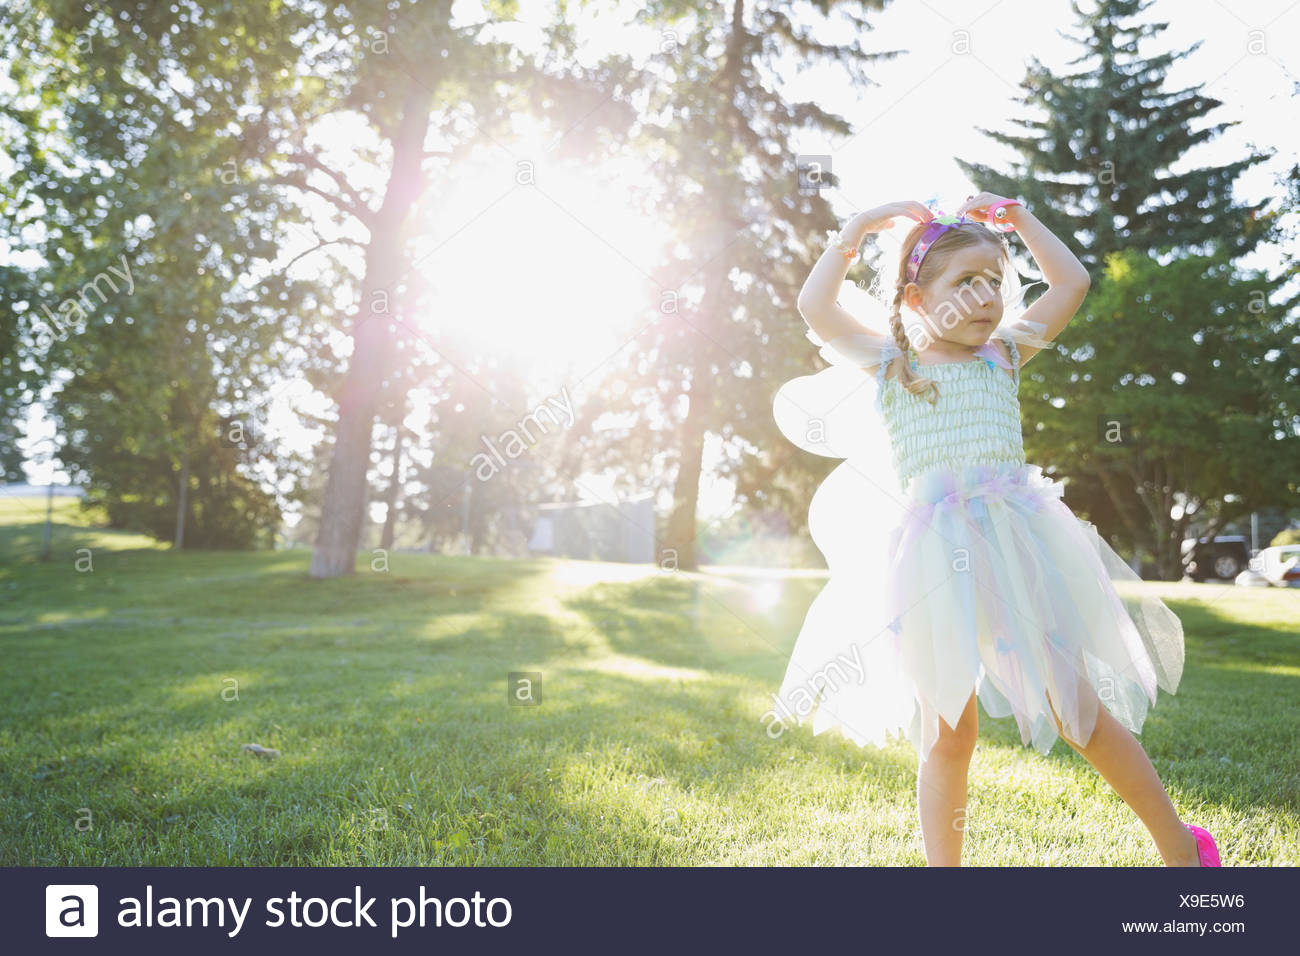 Little girl wearing fairy costume dancing in park - Stock Image